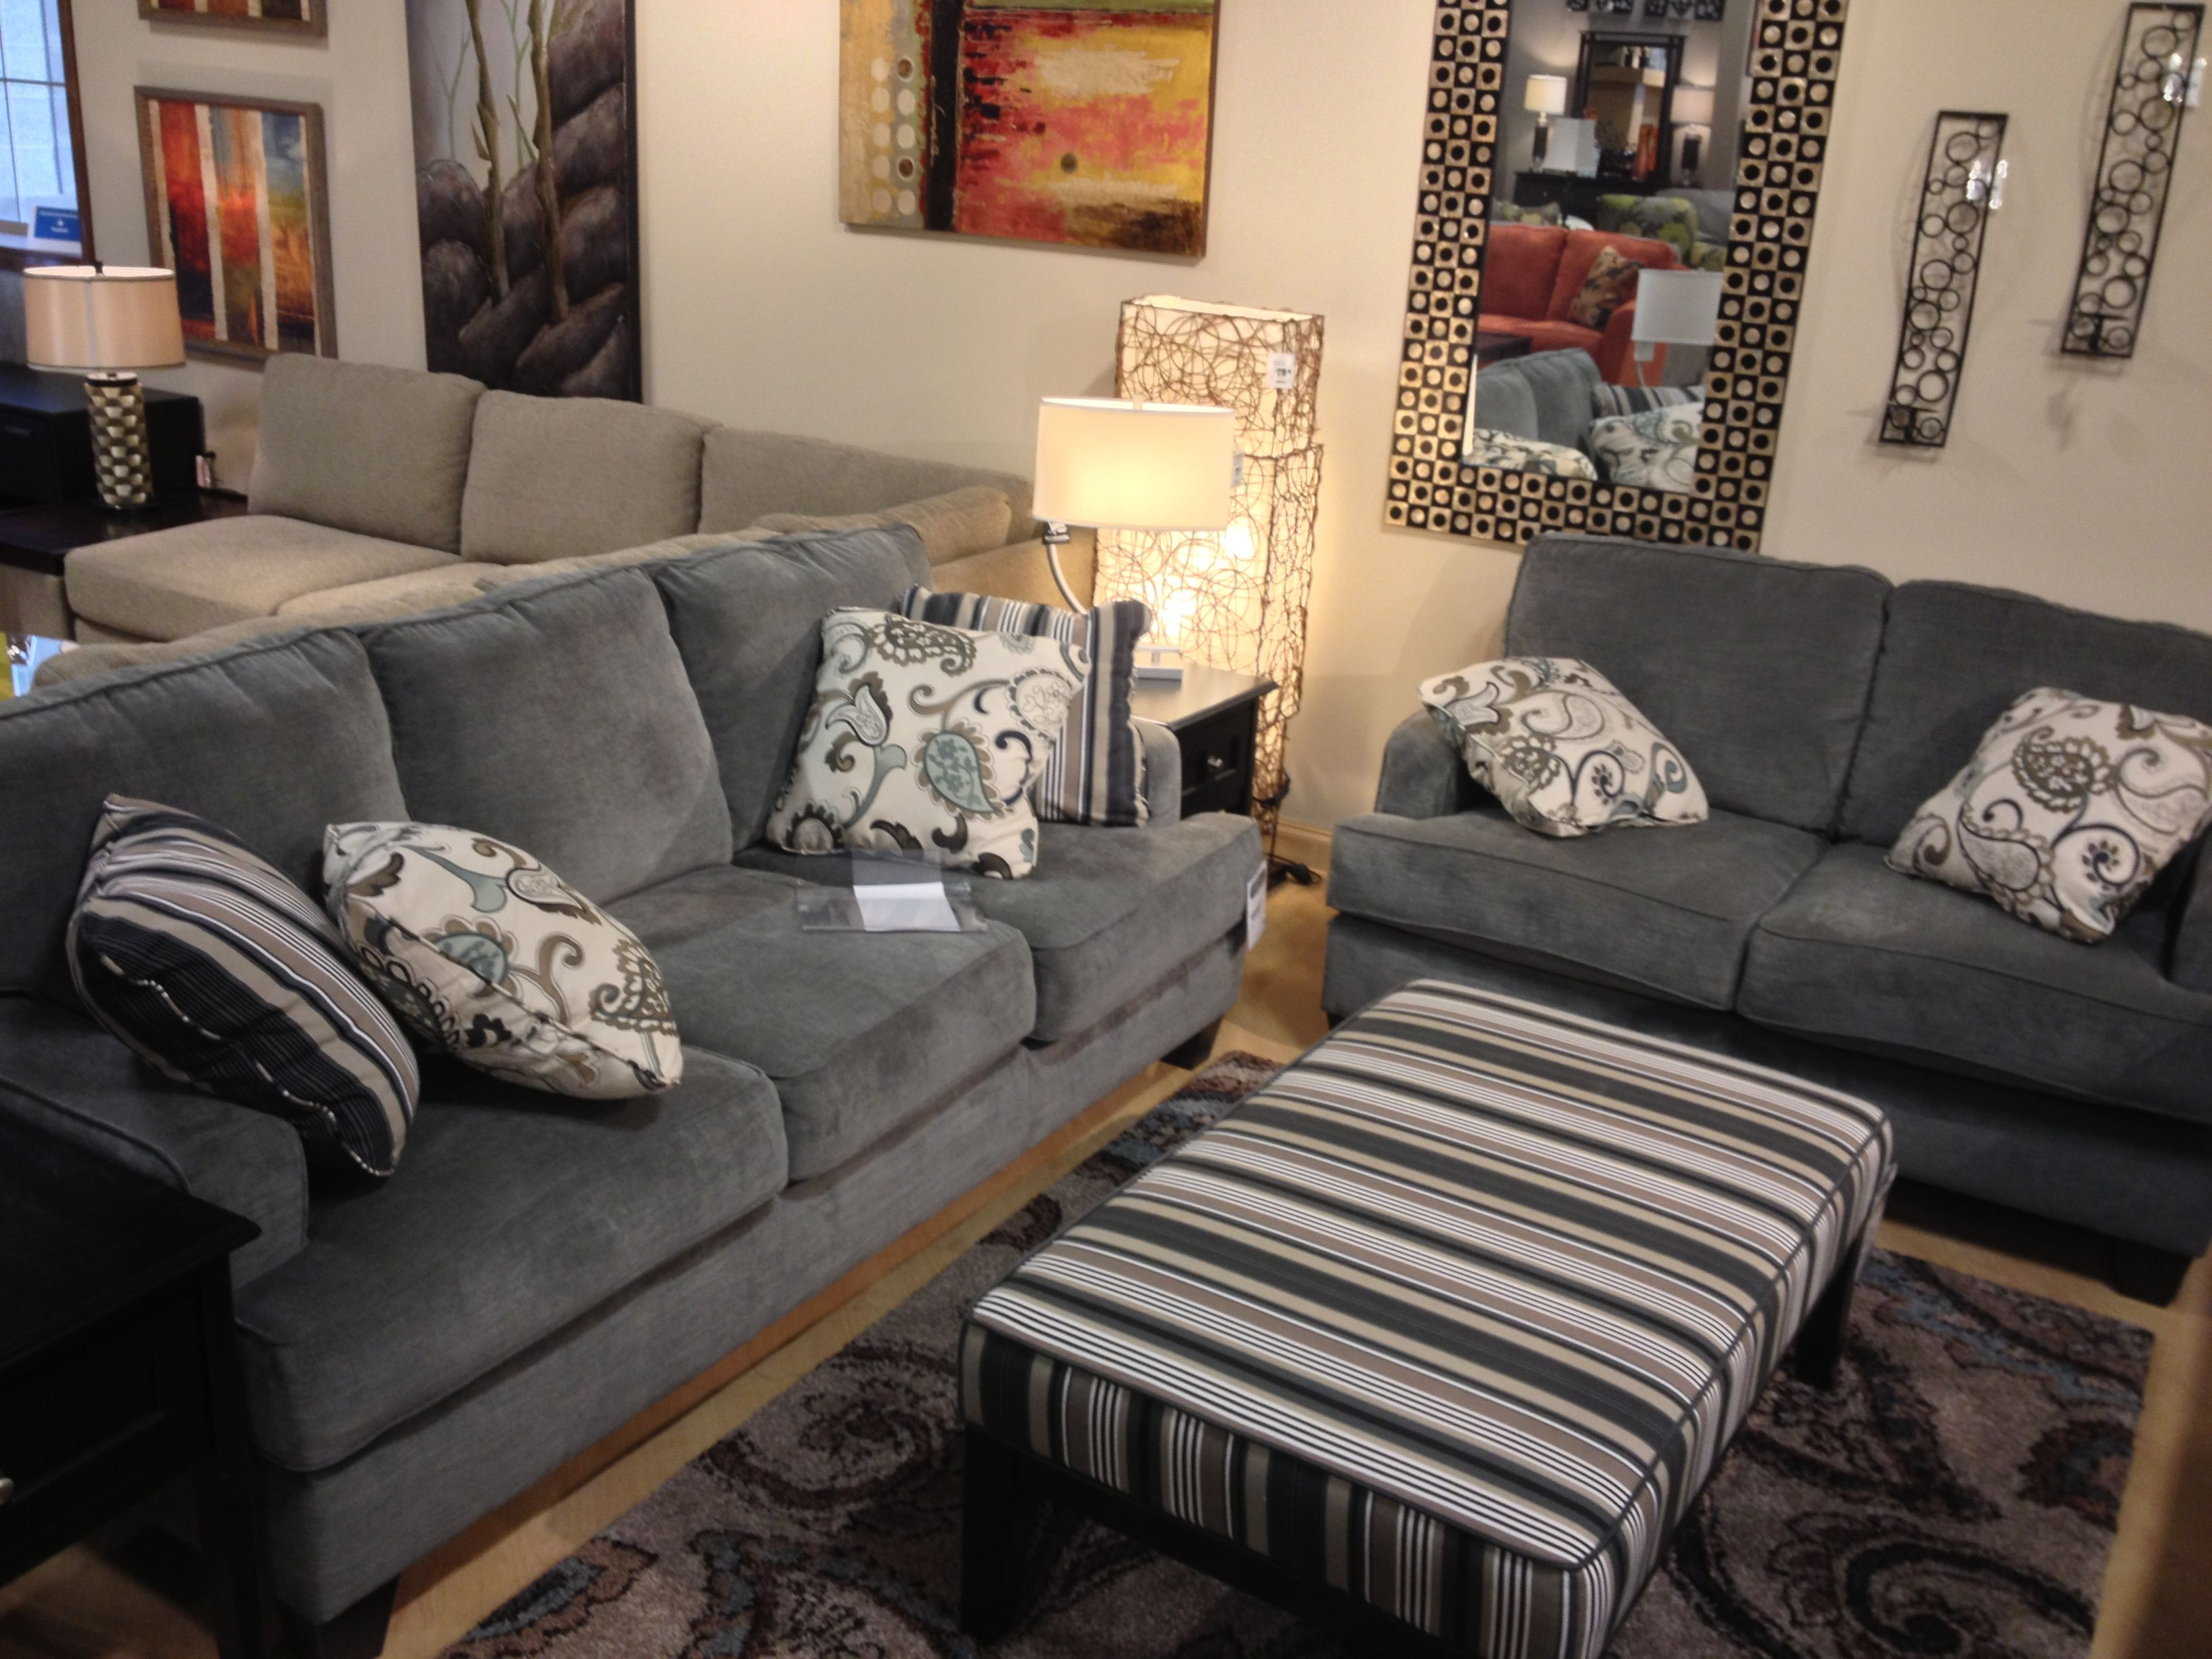 Yvette Steel Couch And Loveseat At Ashley Furniture TriCities Metro Modern Pinterest